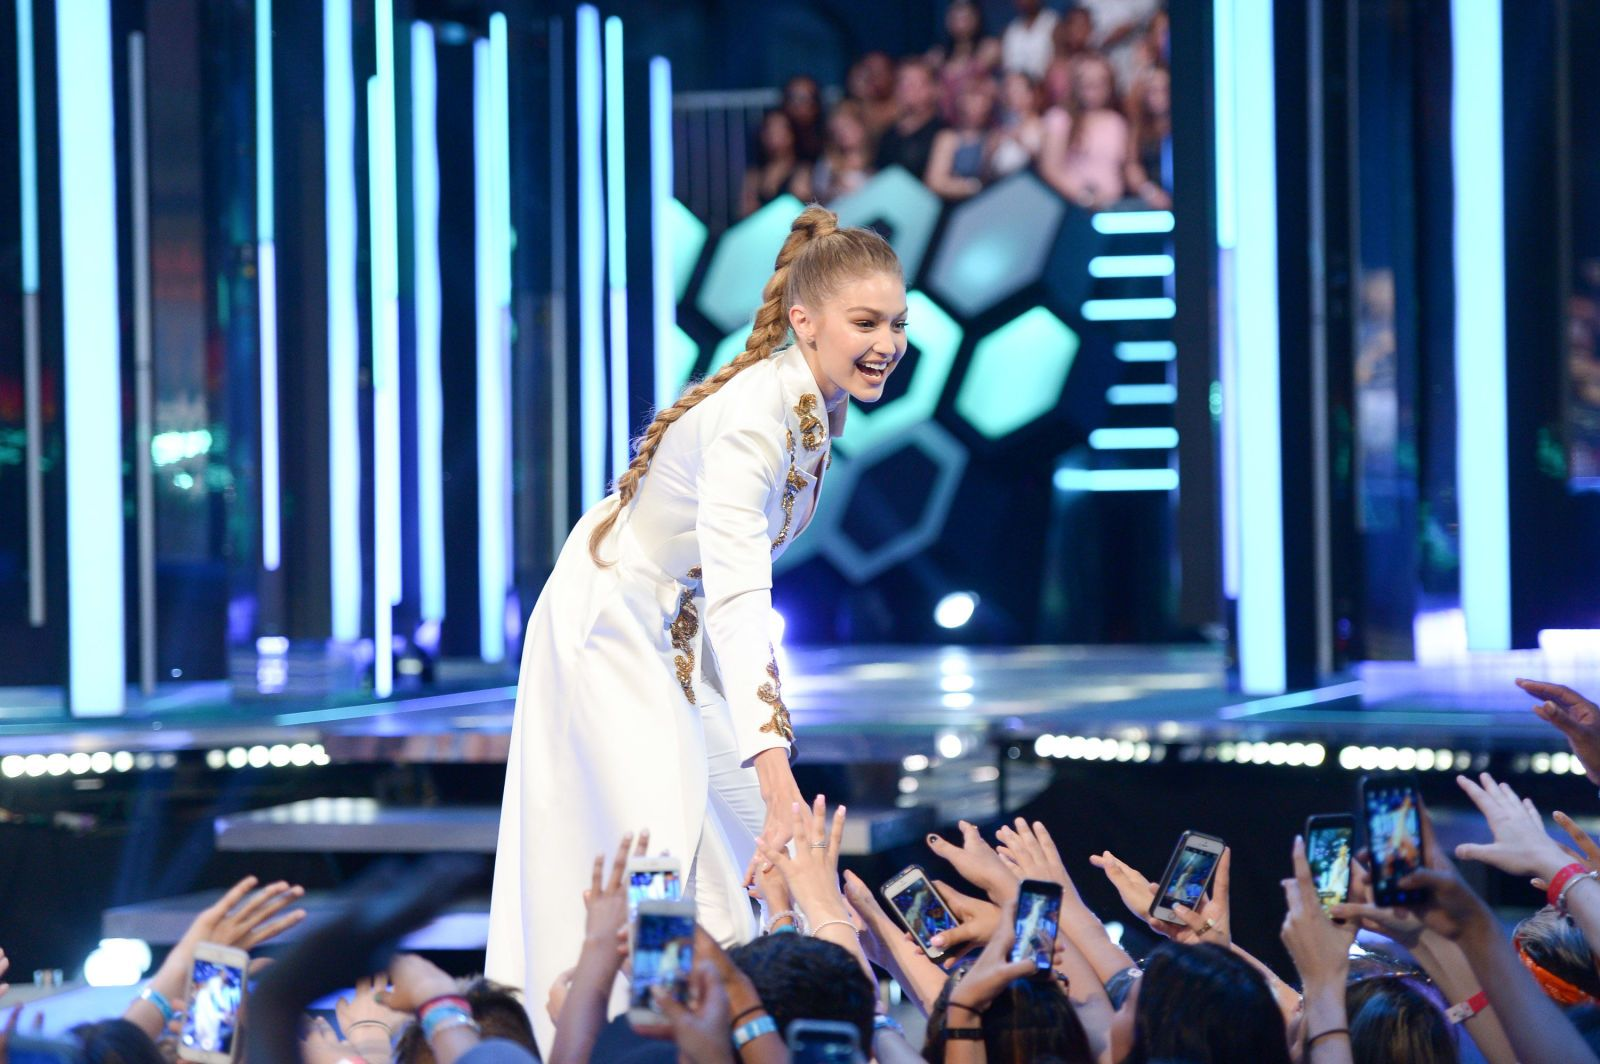 Gigi Hadid Wore 6 Outfits to the MuchMusic Video Awards  - ELLE.com